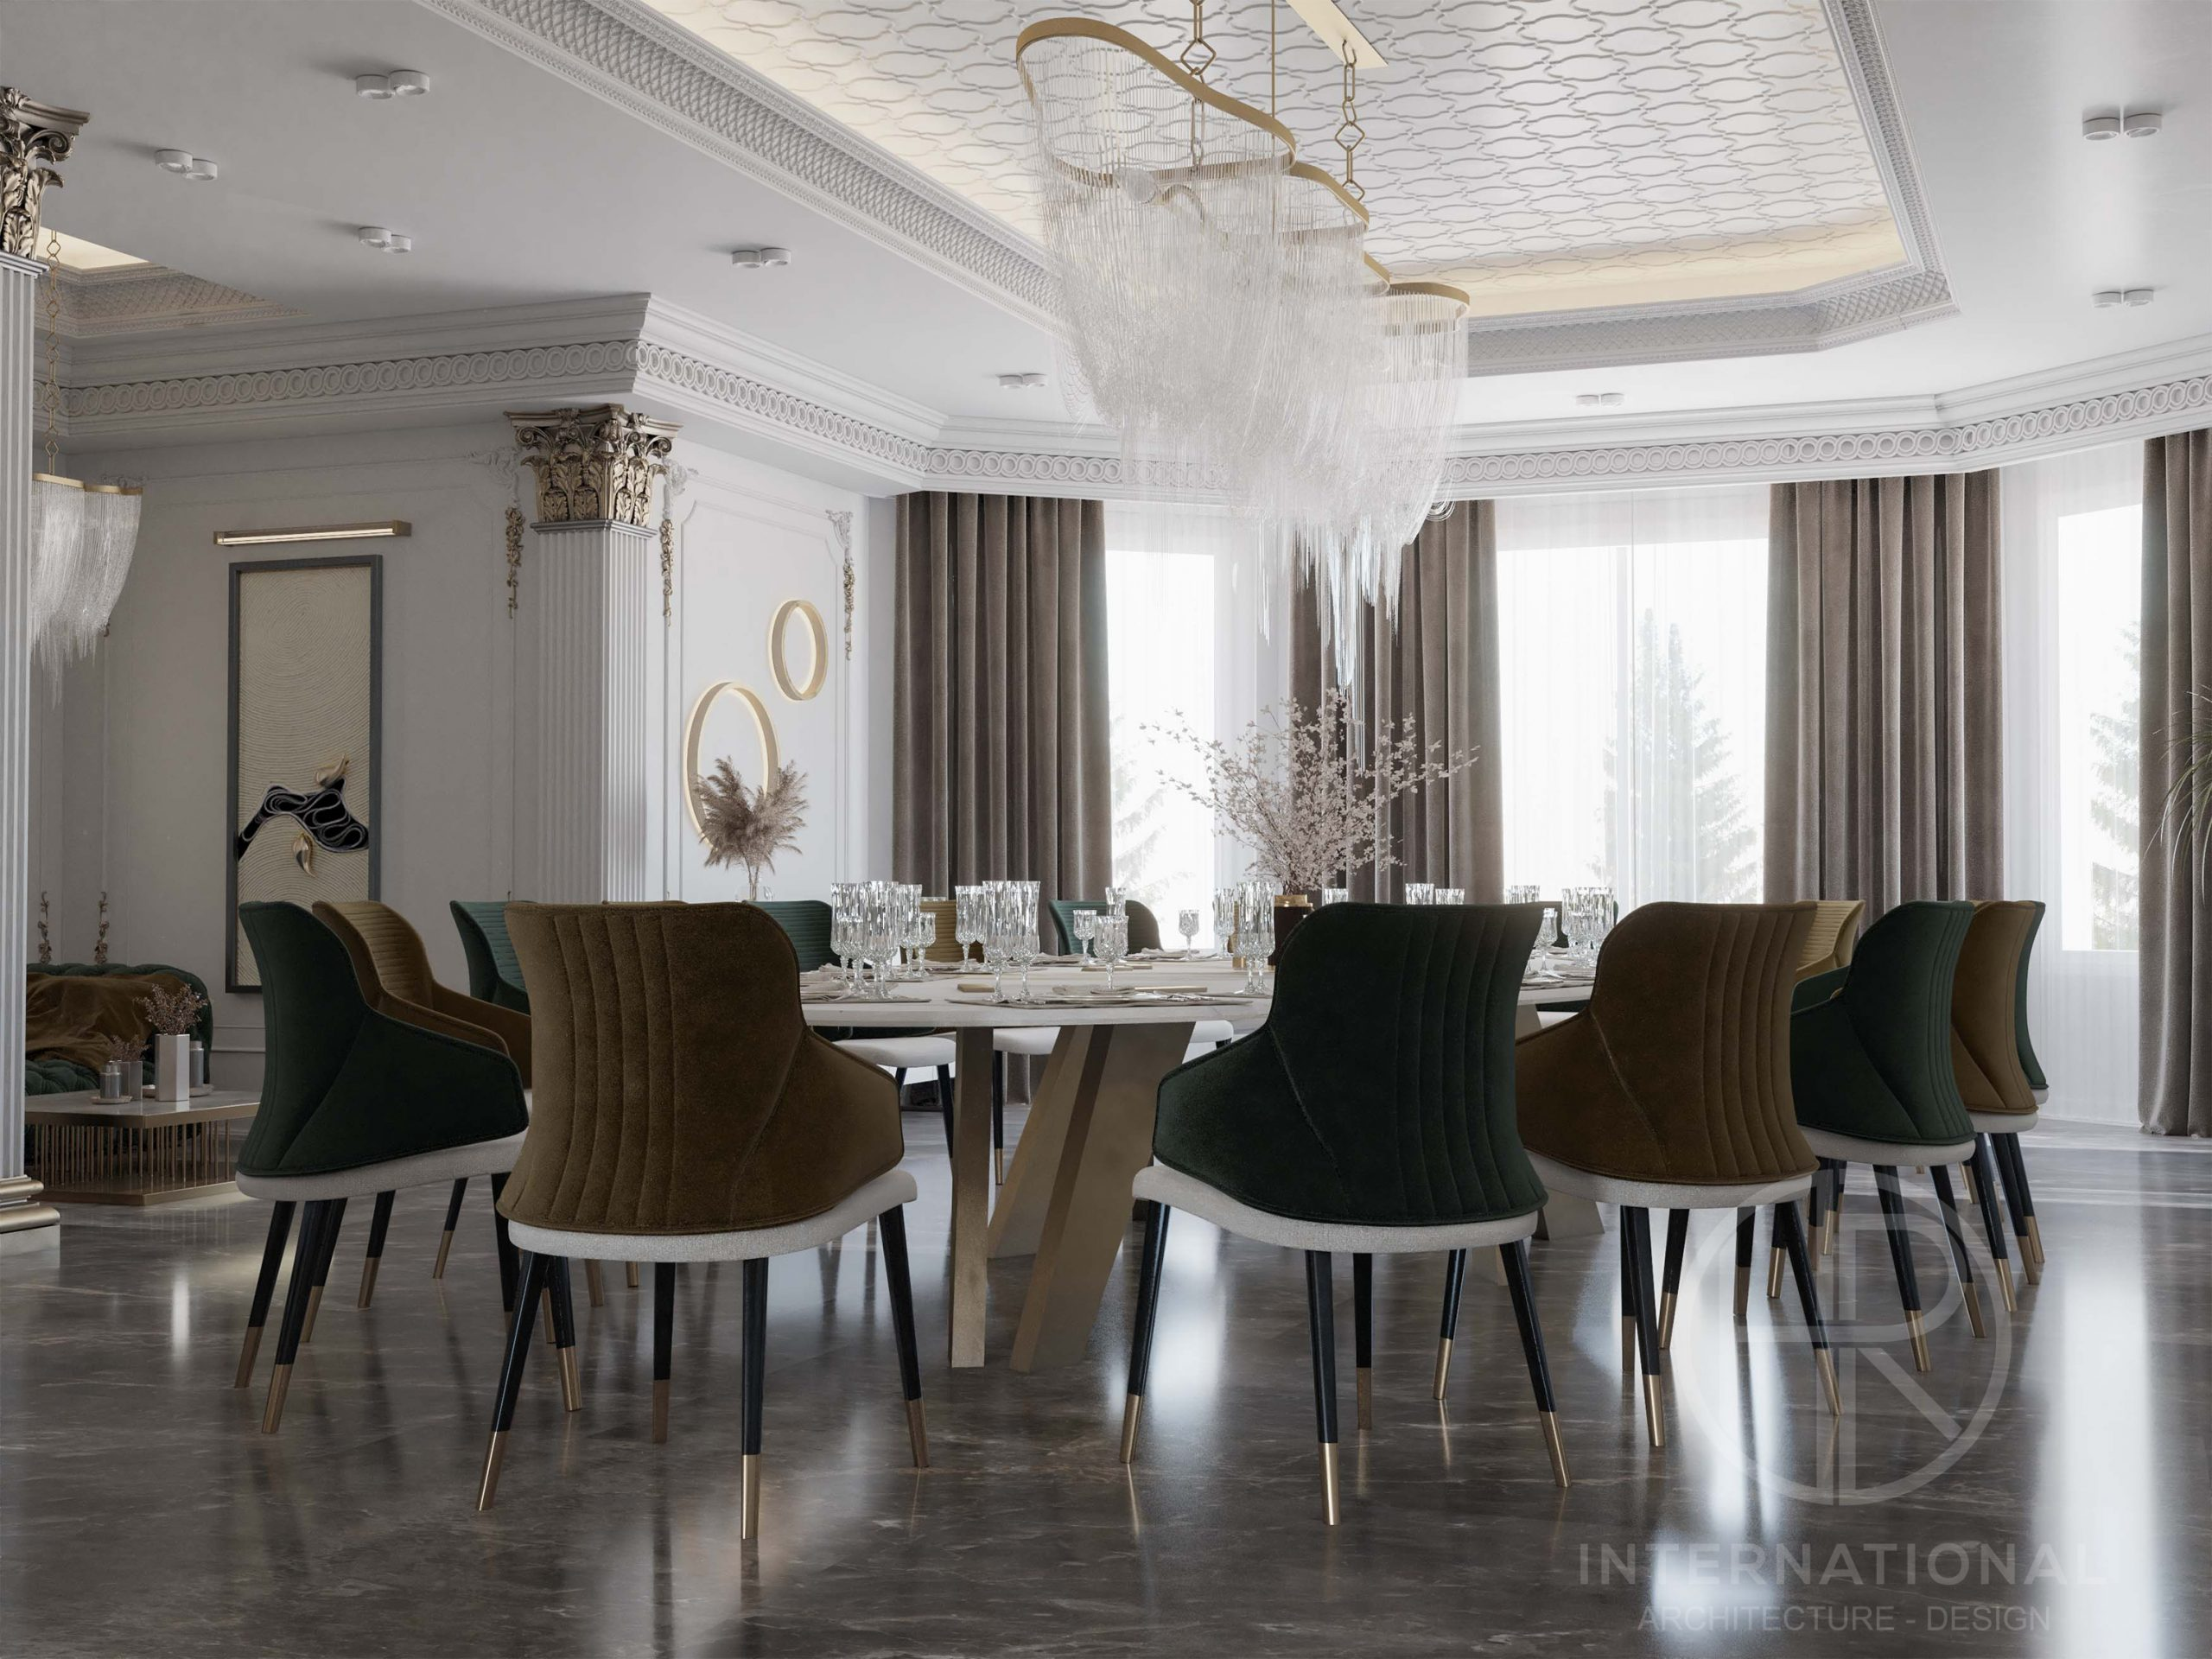 DELUX DINING ROOM - NEO CLASSIC - DINING TABLE - LUXURY